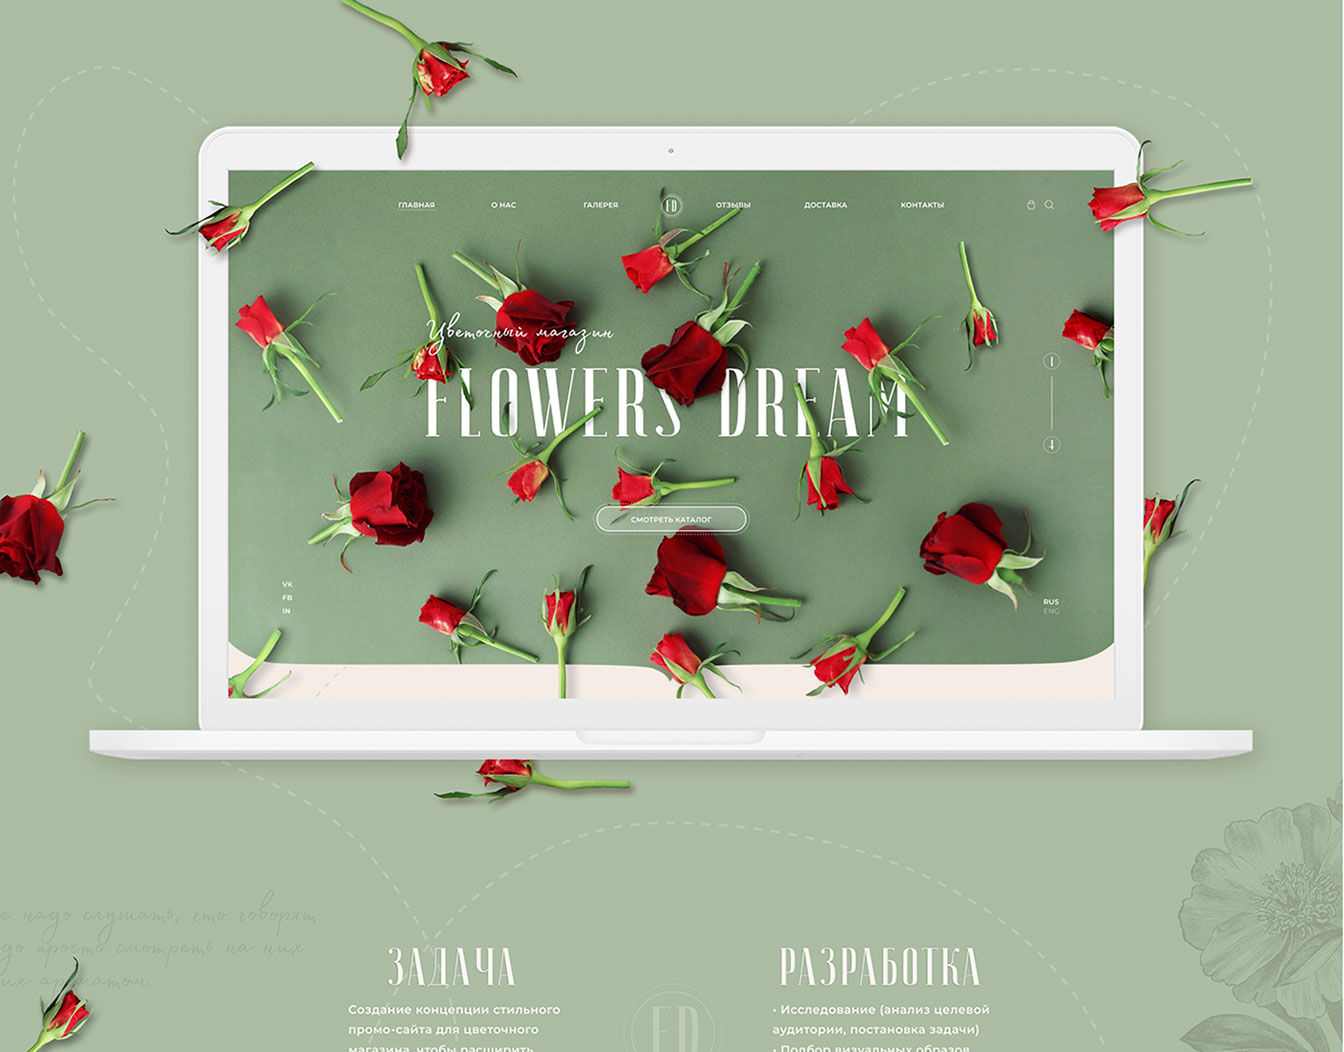 Macbook screen with flowers as inspiration for first communion.